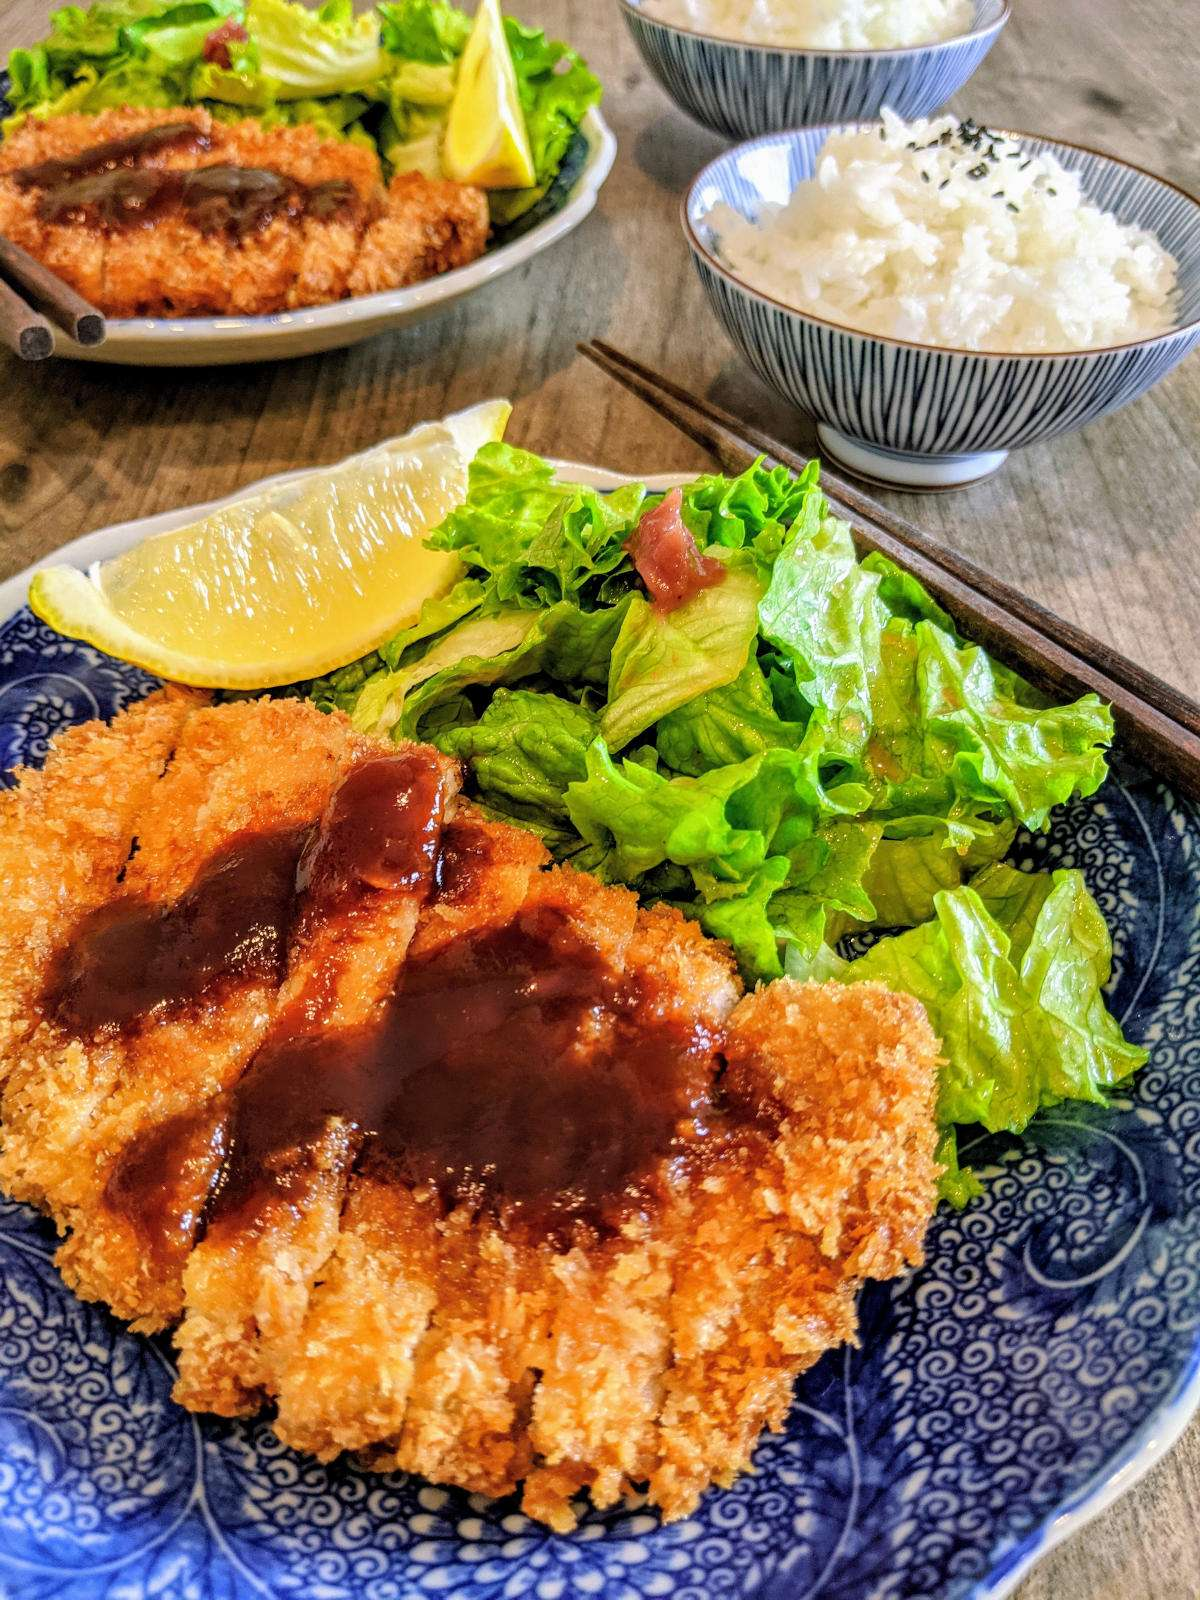 Tonkatsu with two plates close-up